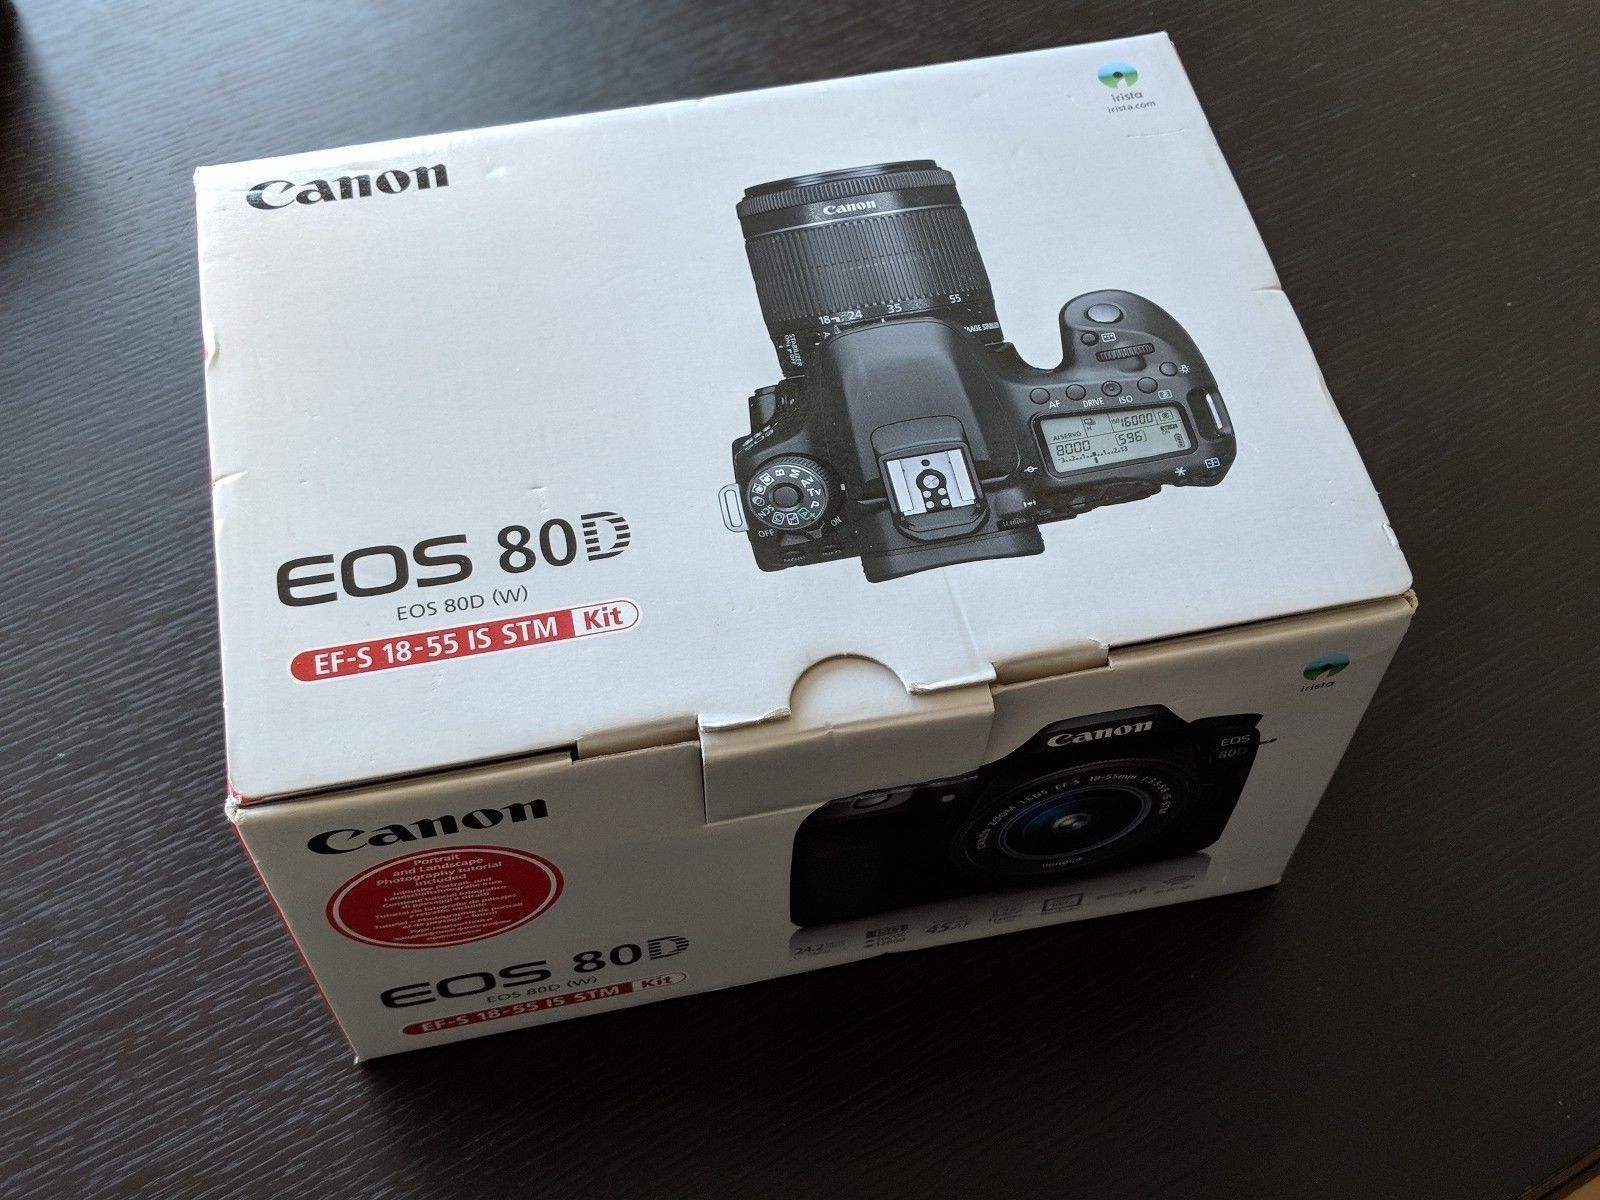 Canon EOS 80D Kit inkl. EF-S 18-55mm 1:3,5-5,6 IS STM